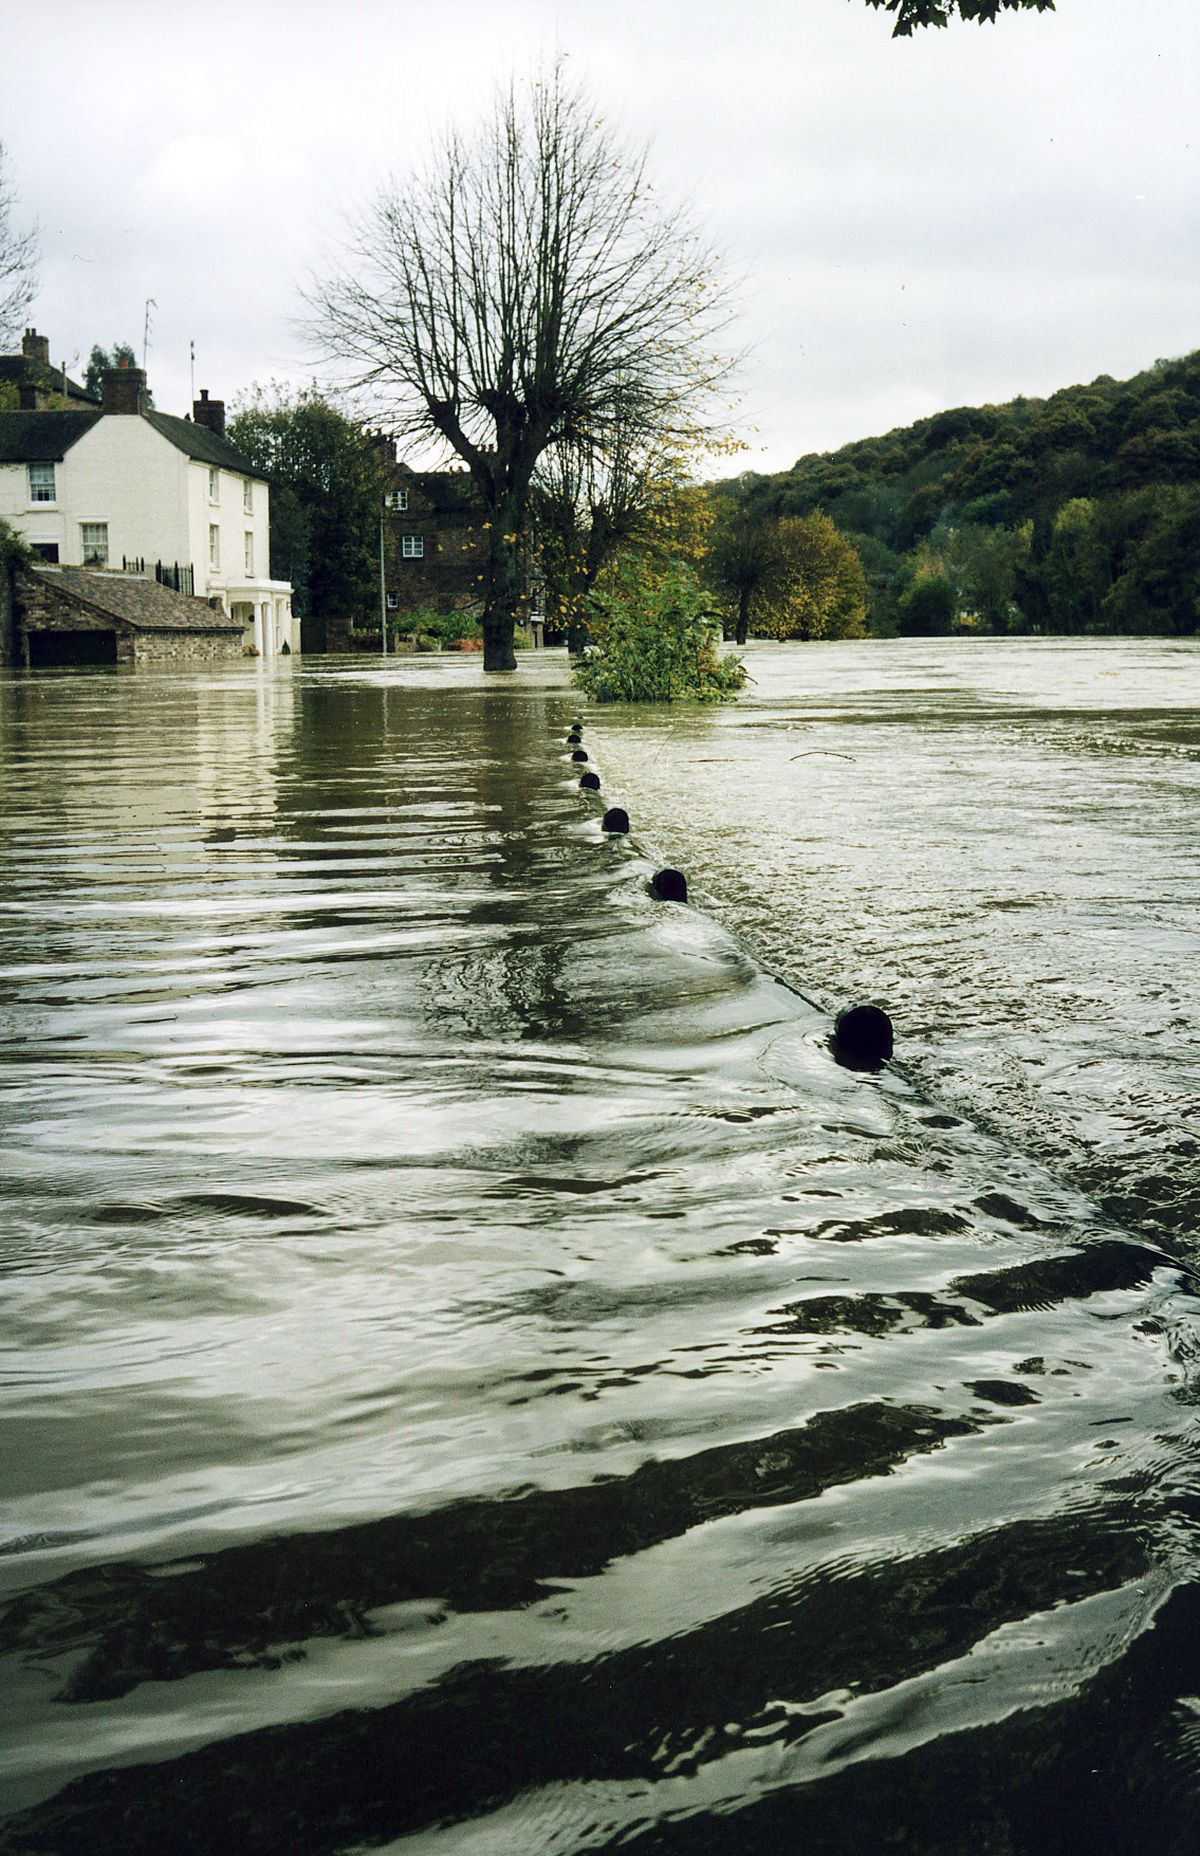 The Wharfage in Ironbridge during the floods in 2000 before defences were installed. This picture was taken by reader Richard Starr